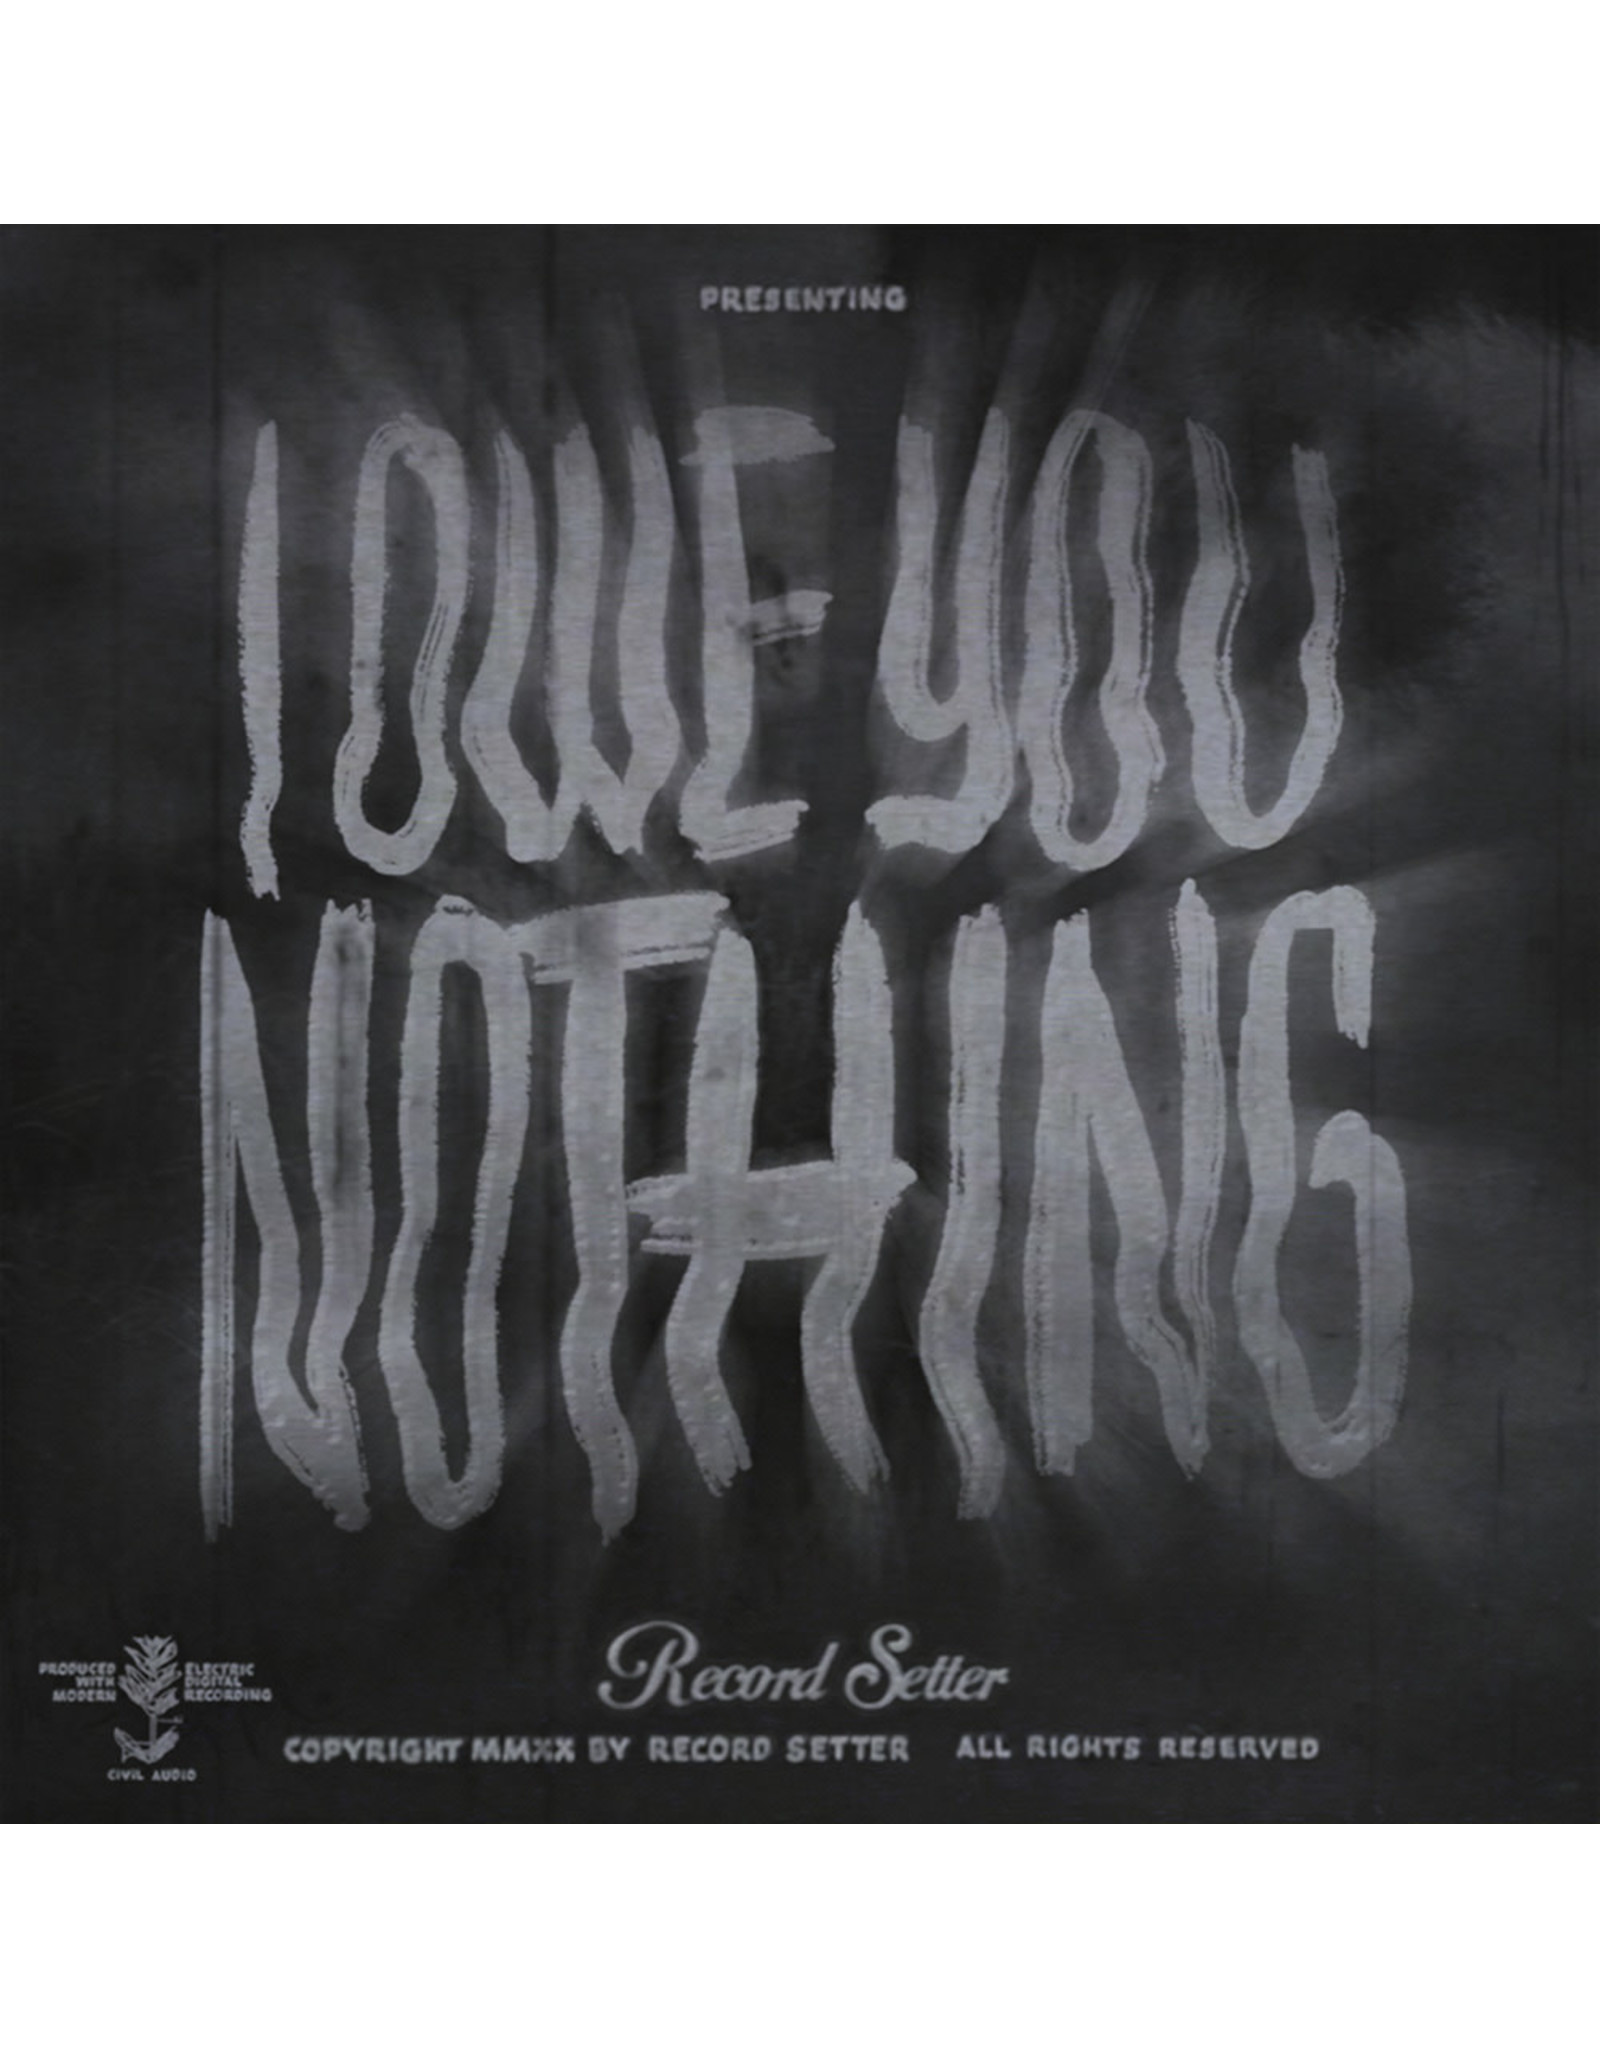 Record Setter - I Owe You Nothing LP (Gray w/ Black Swirl)